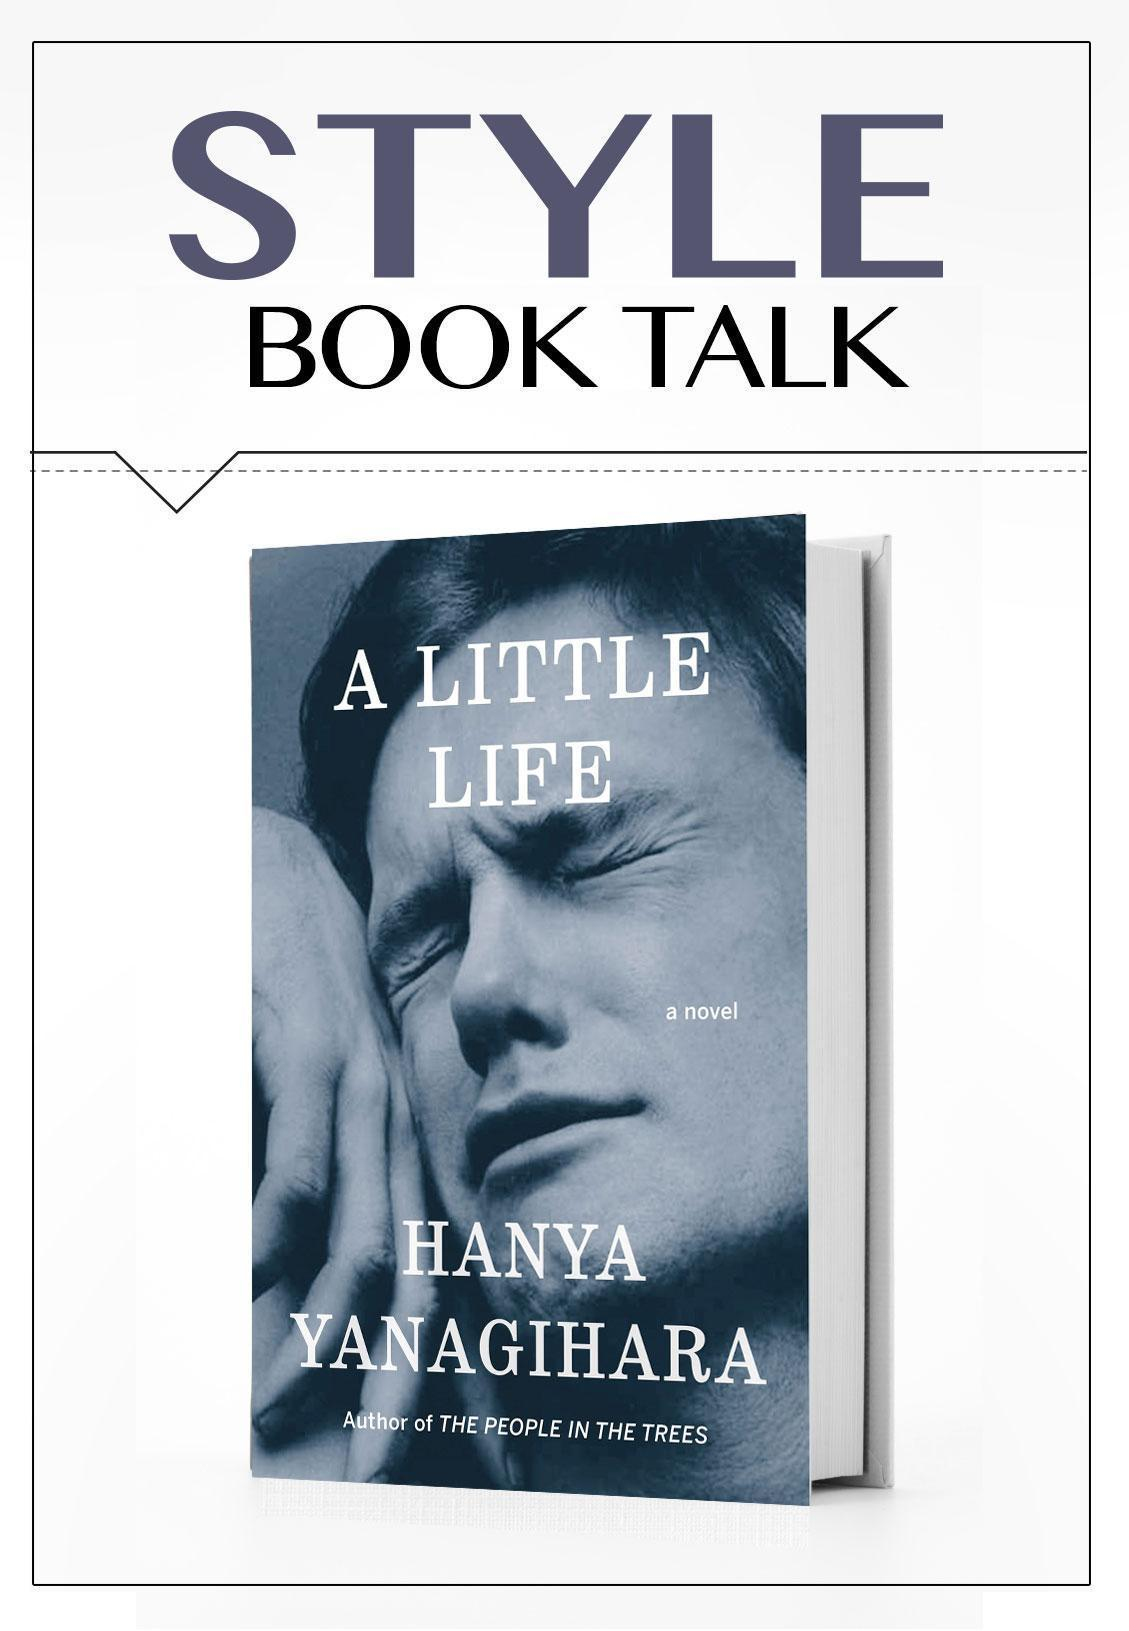 Hanya Yanagihara's New Novel Offers an Inside Look into the Mysterious Male Psyche